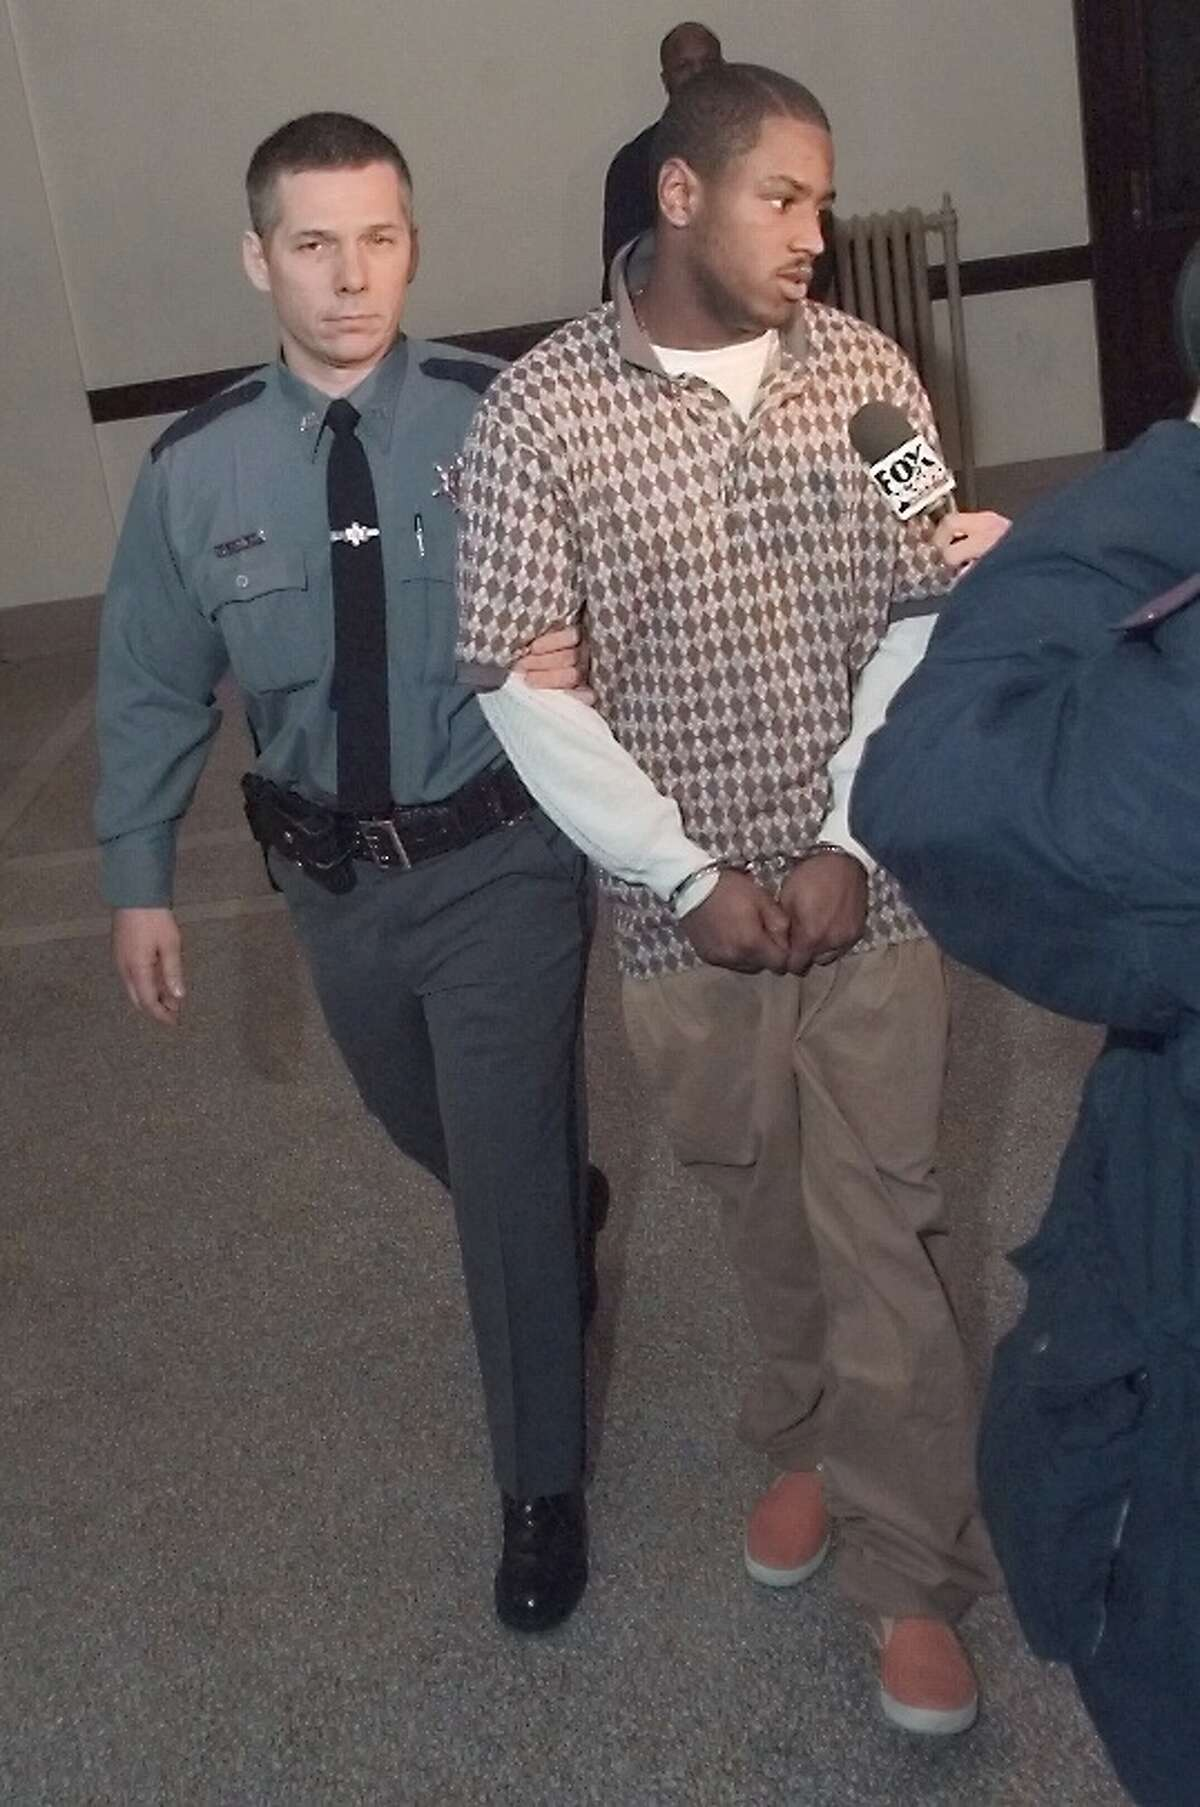 Carl Dukes is taken away after being sentenced to 37 years to life in prison in January 1999. Dukes told a judge he was wrongly convicted and pressured by police into signing a confession for the killing.